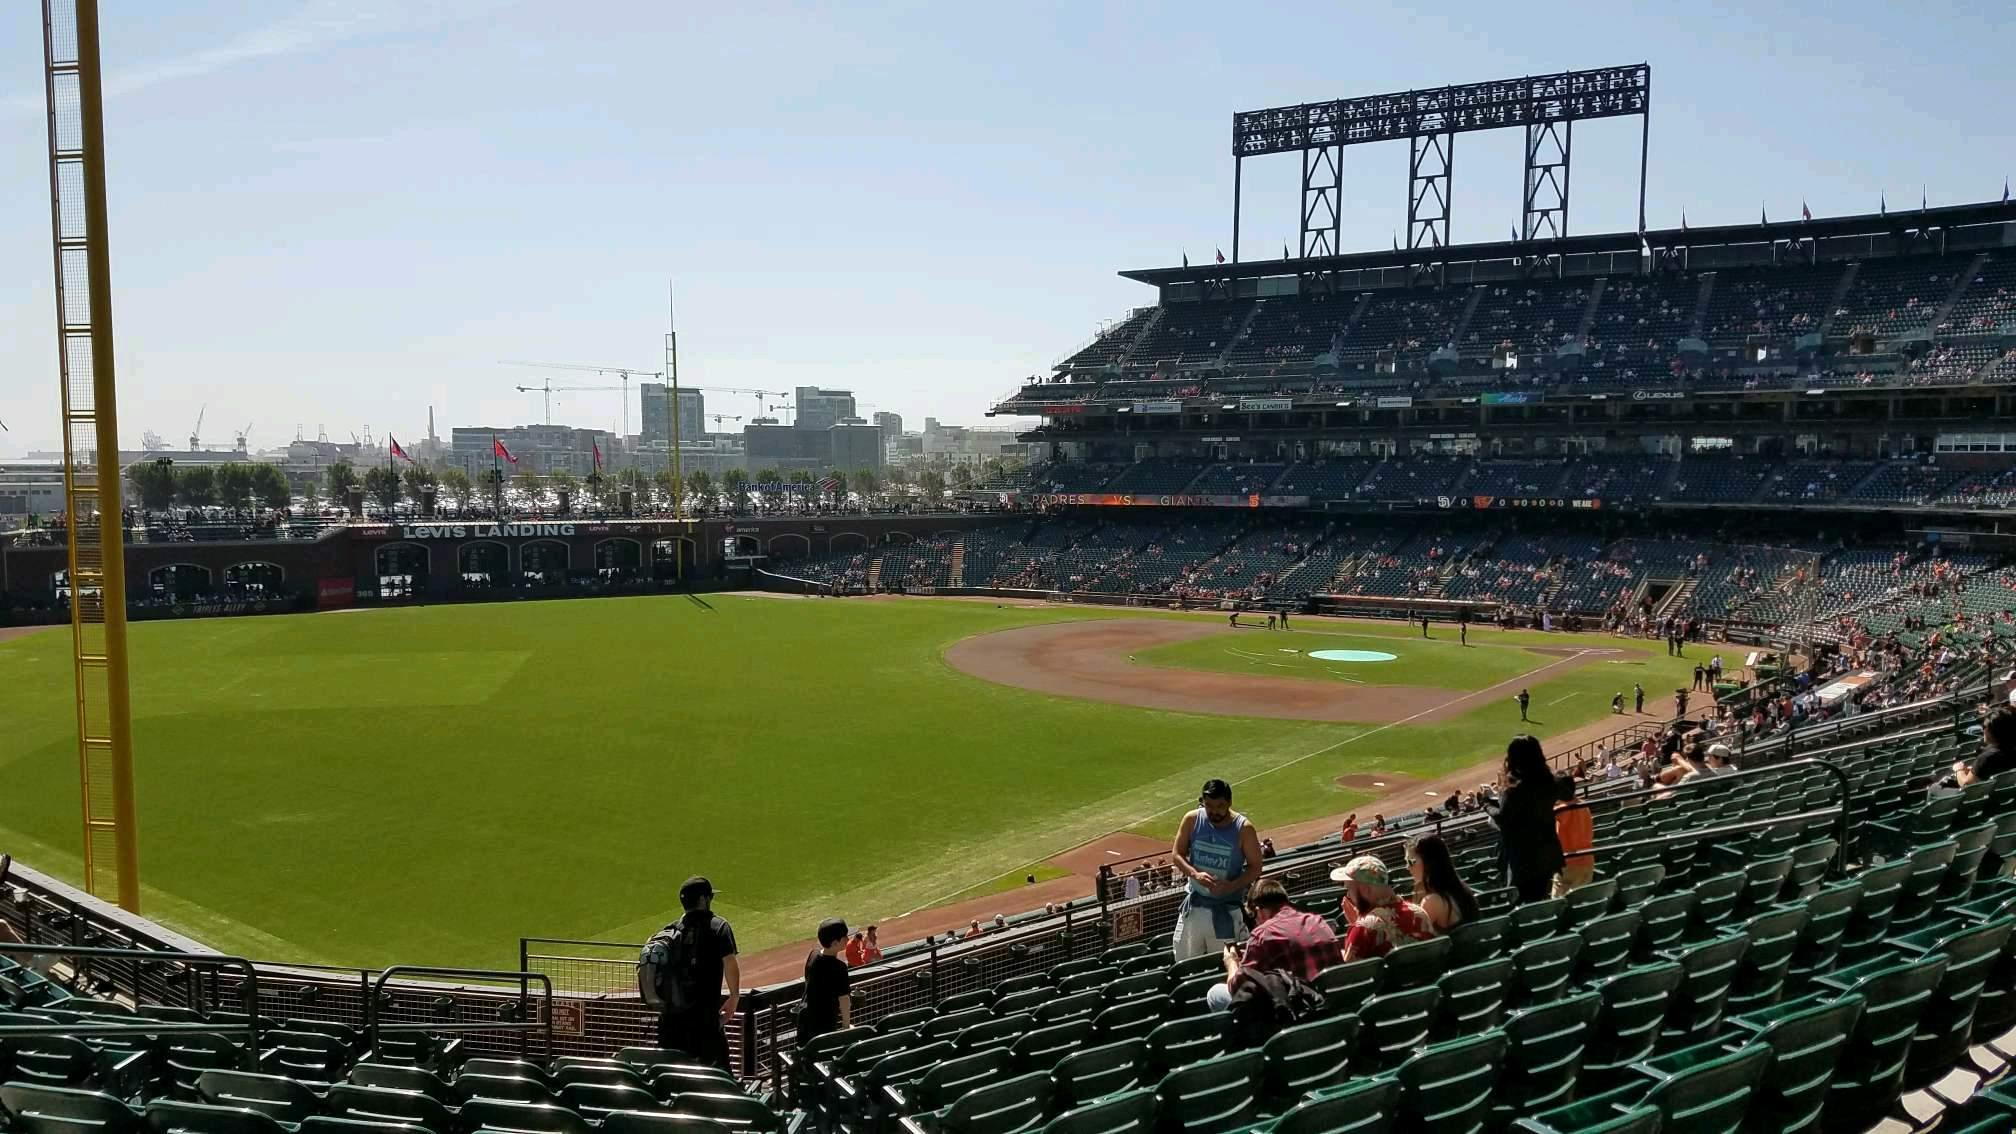 AT&T Park Section 232 Row j Seat 17